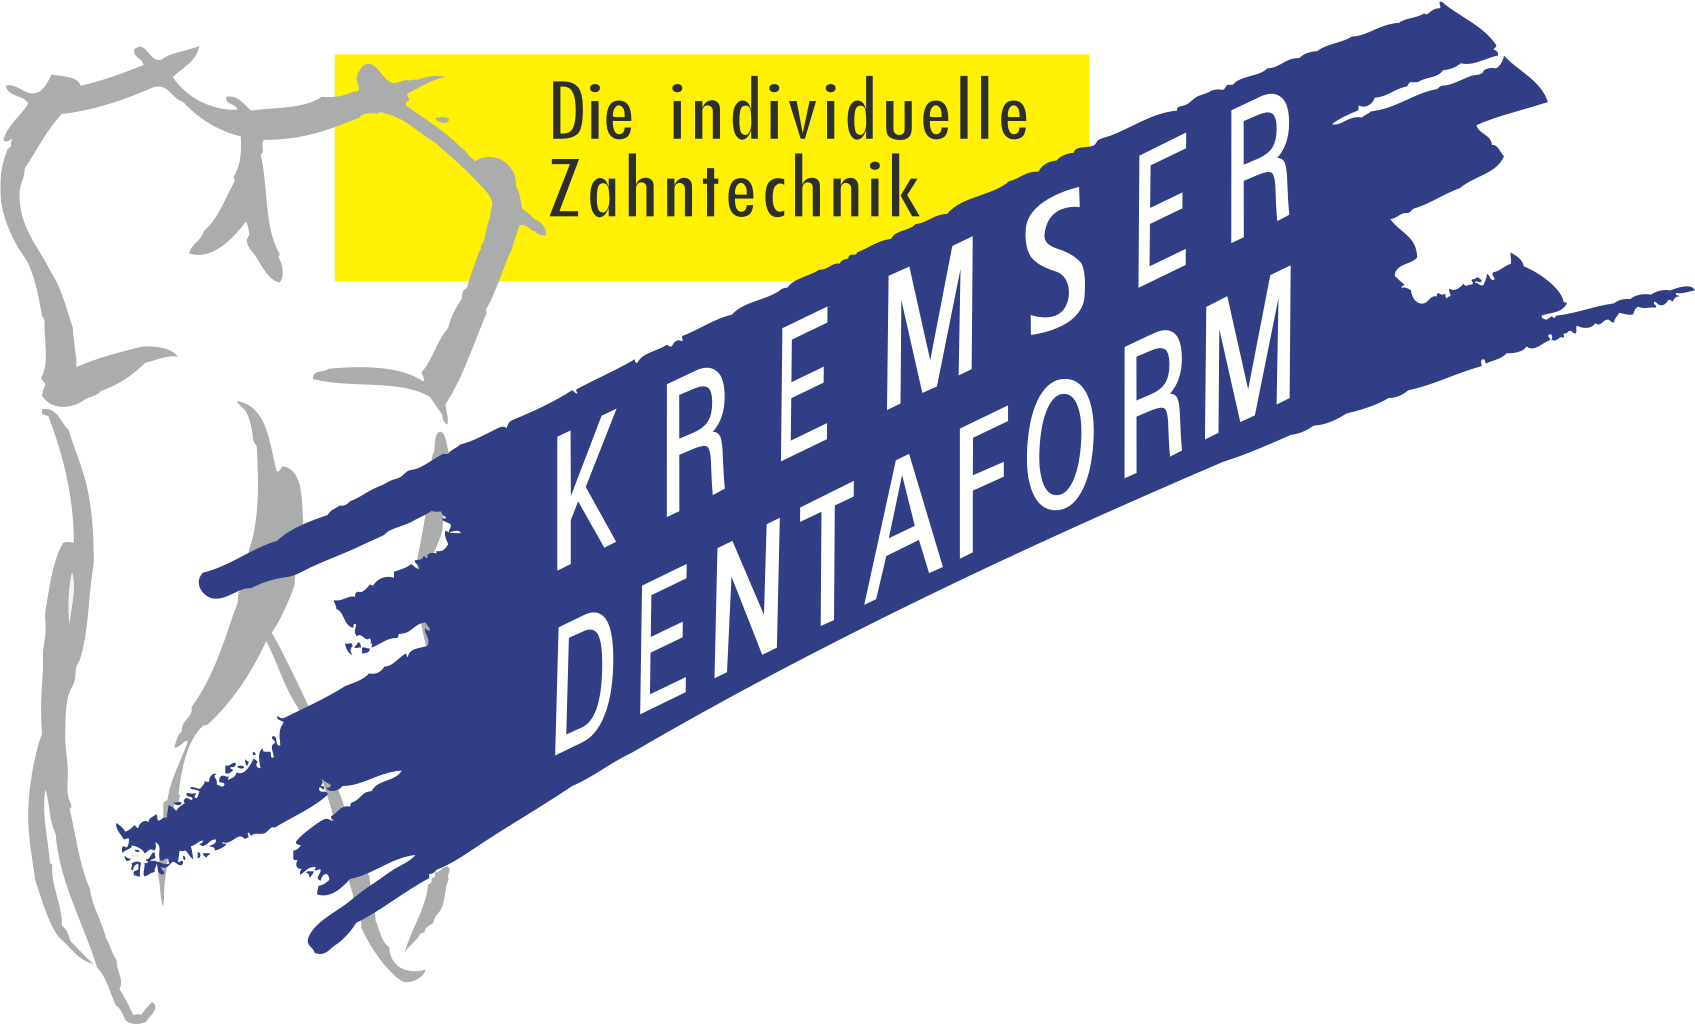 Kremser Dentaform in 72124 Pliezhausen